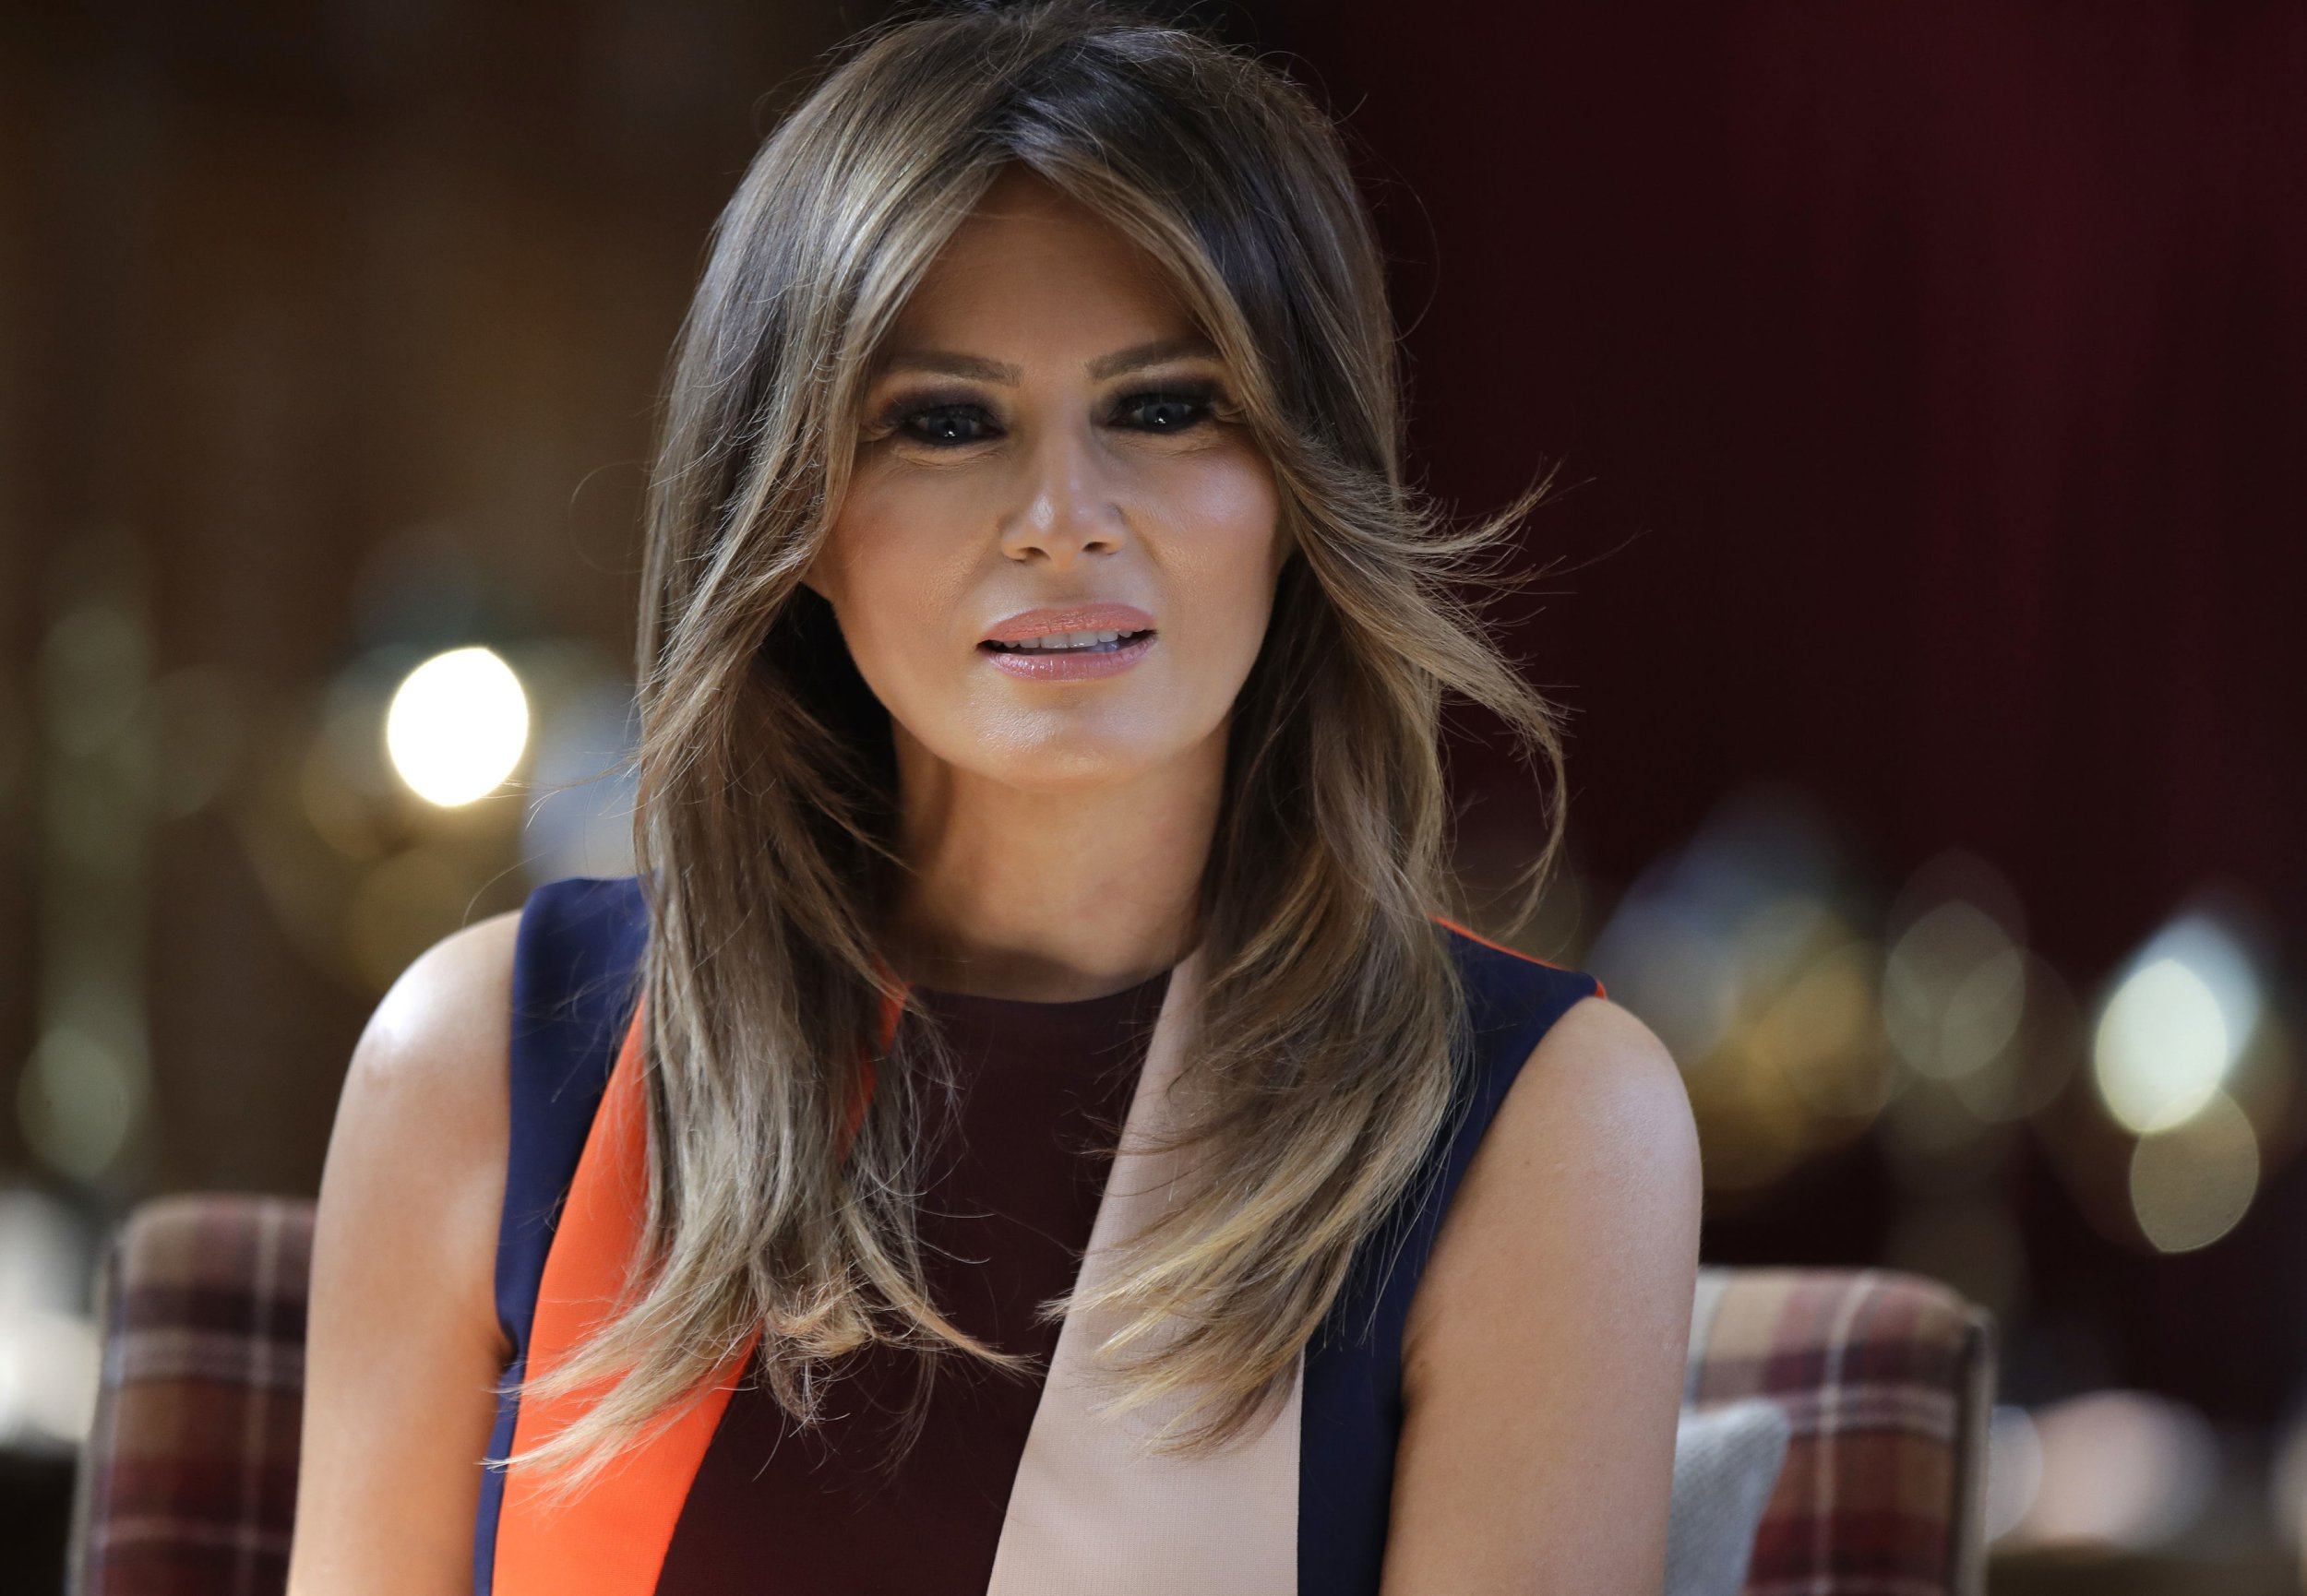 How old is Melania Trump, where is she from and how long has she been married to Donald?